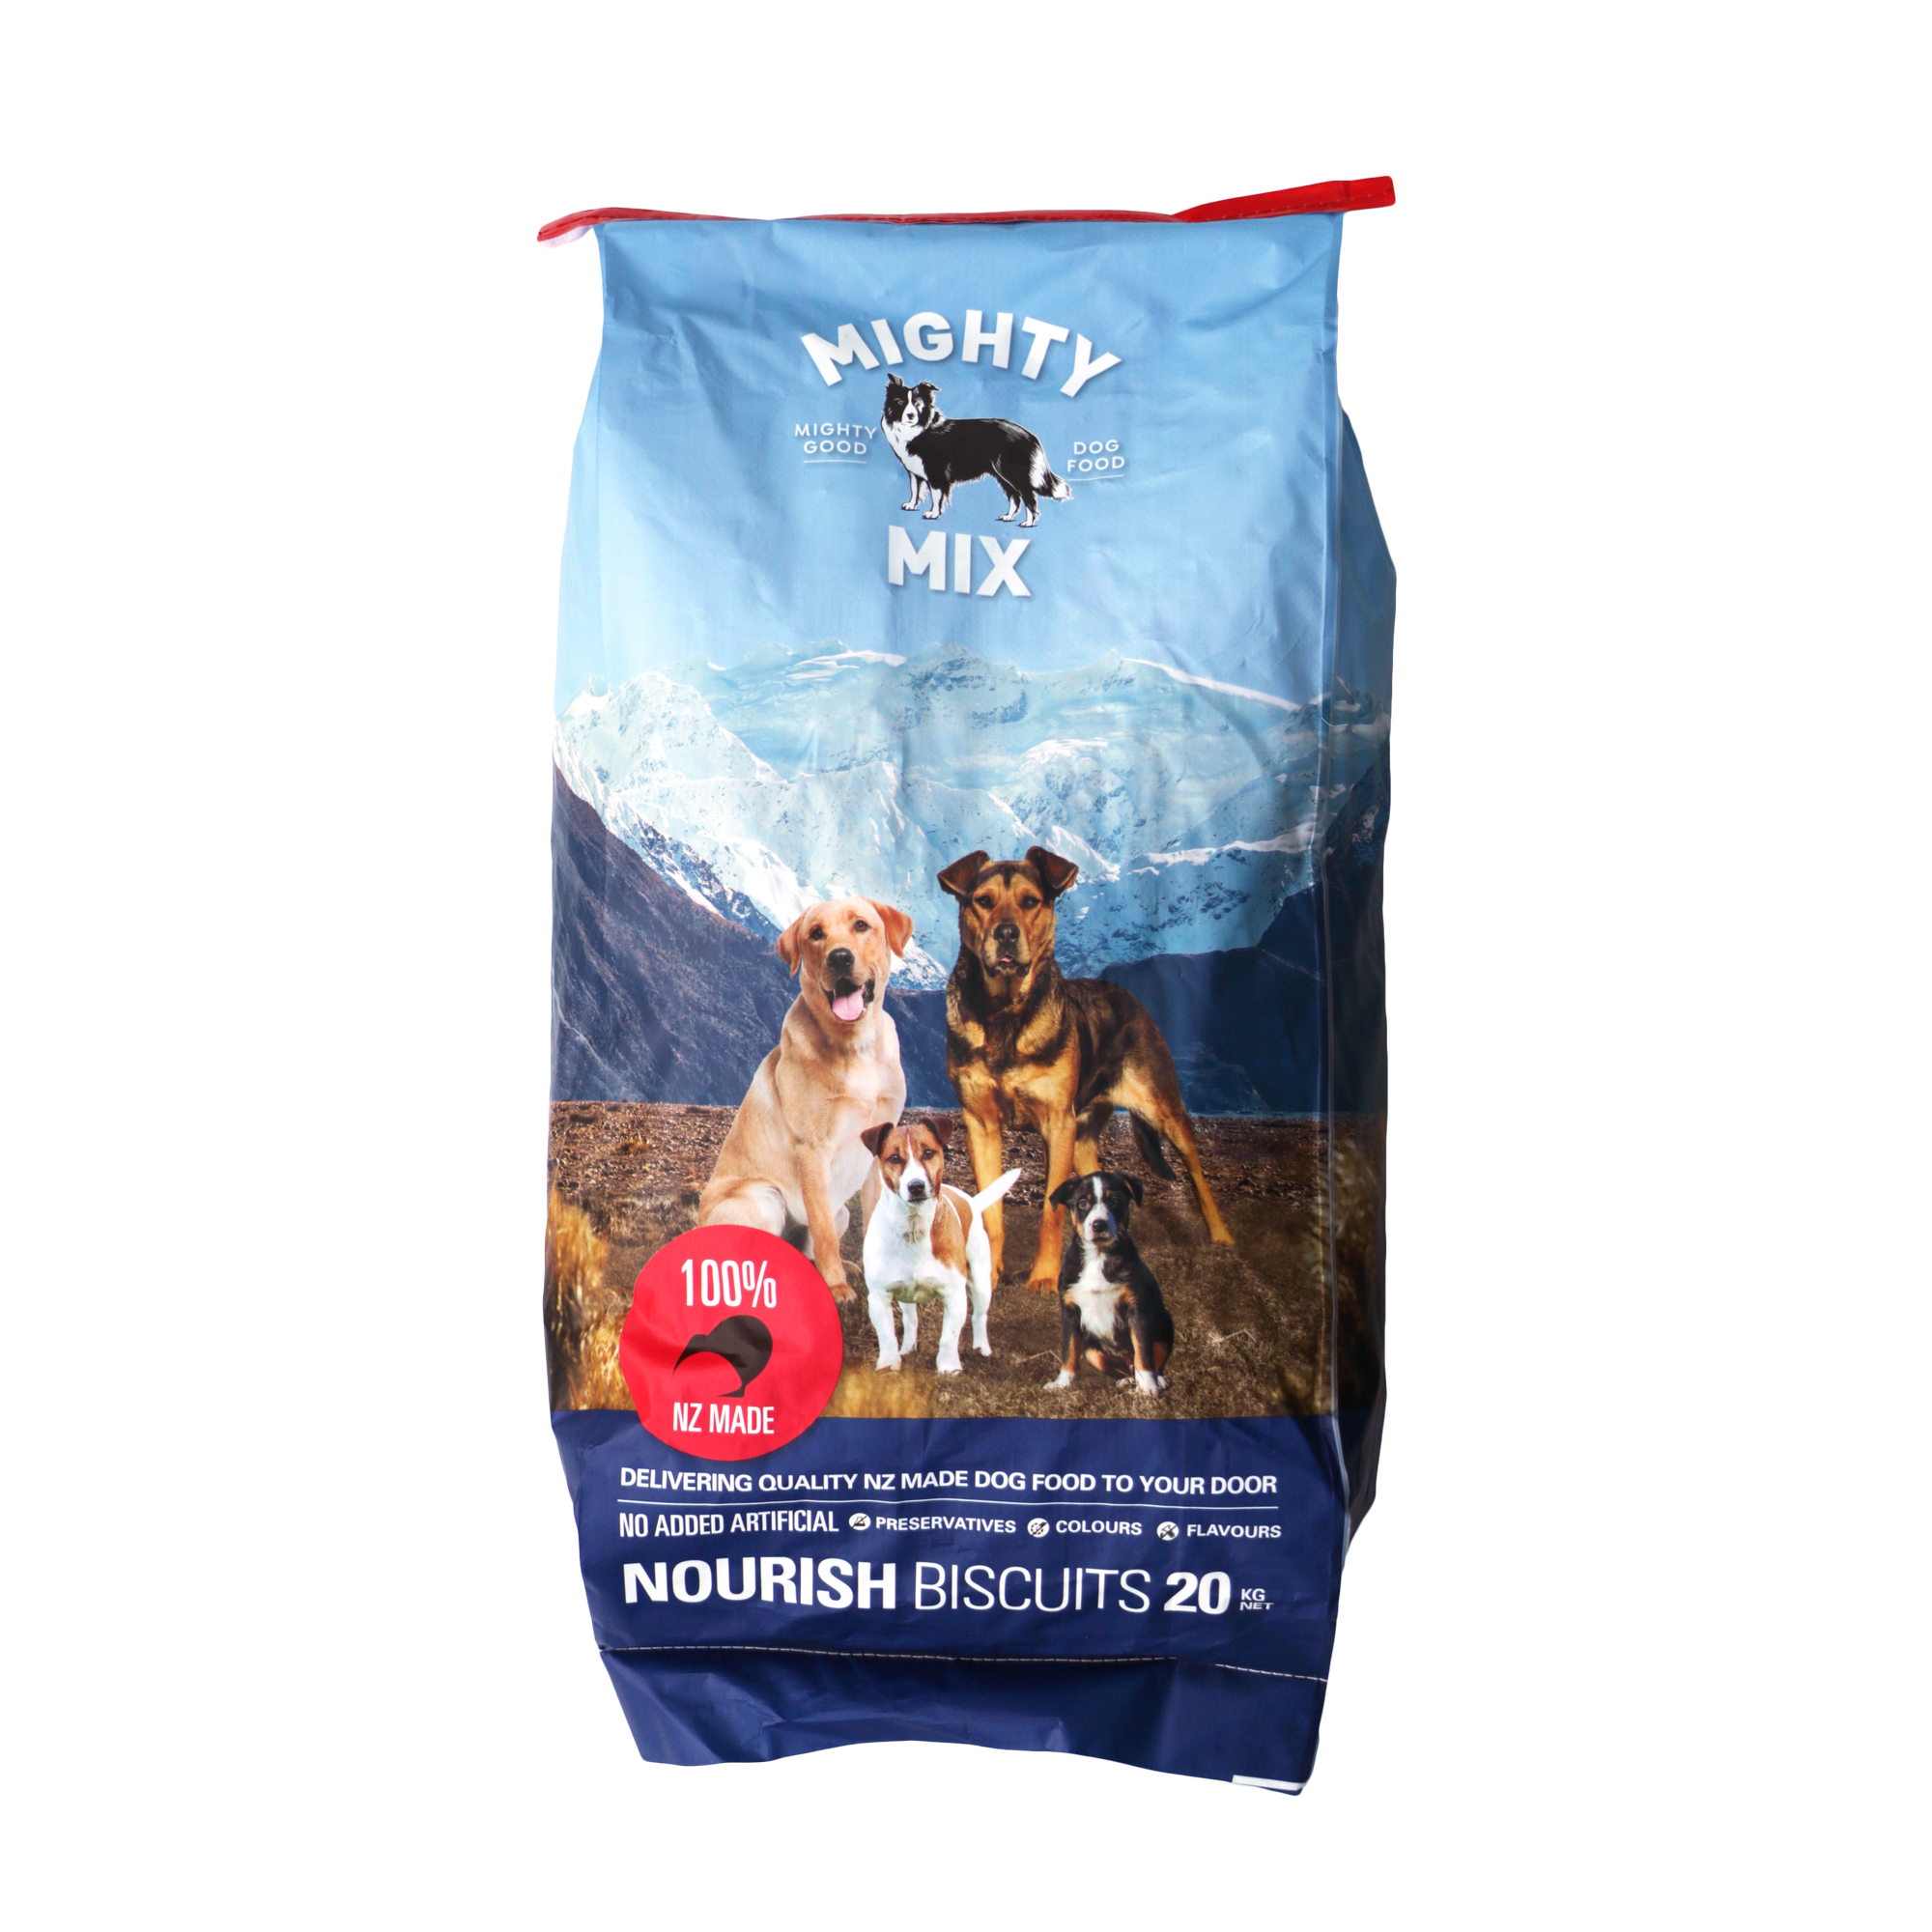 Mighty Mix Nourish Dog Biscuits